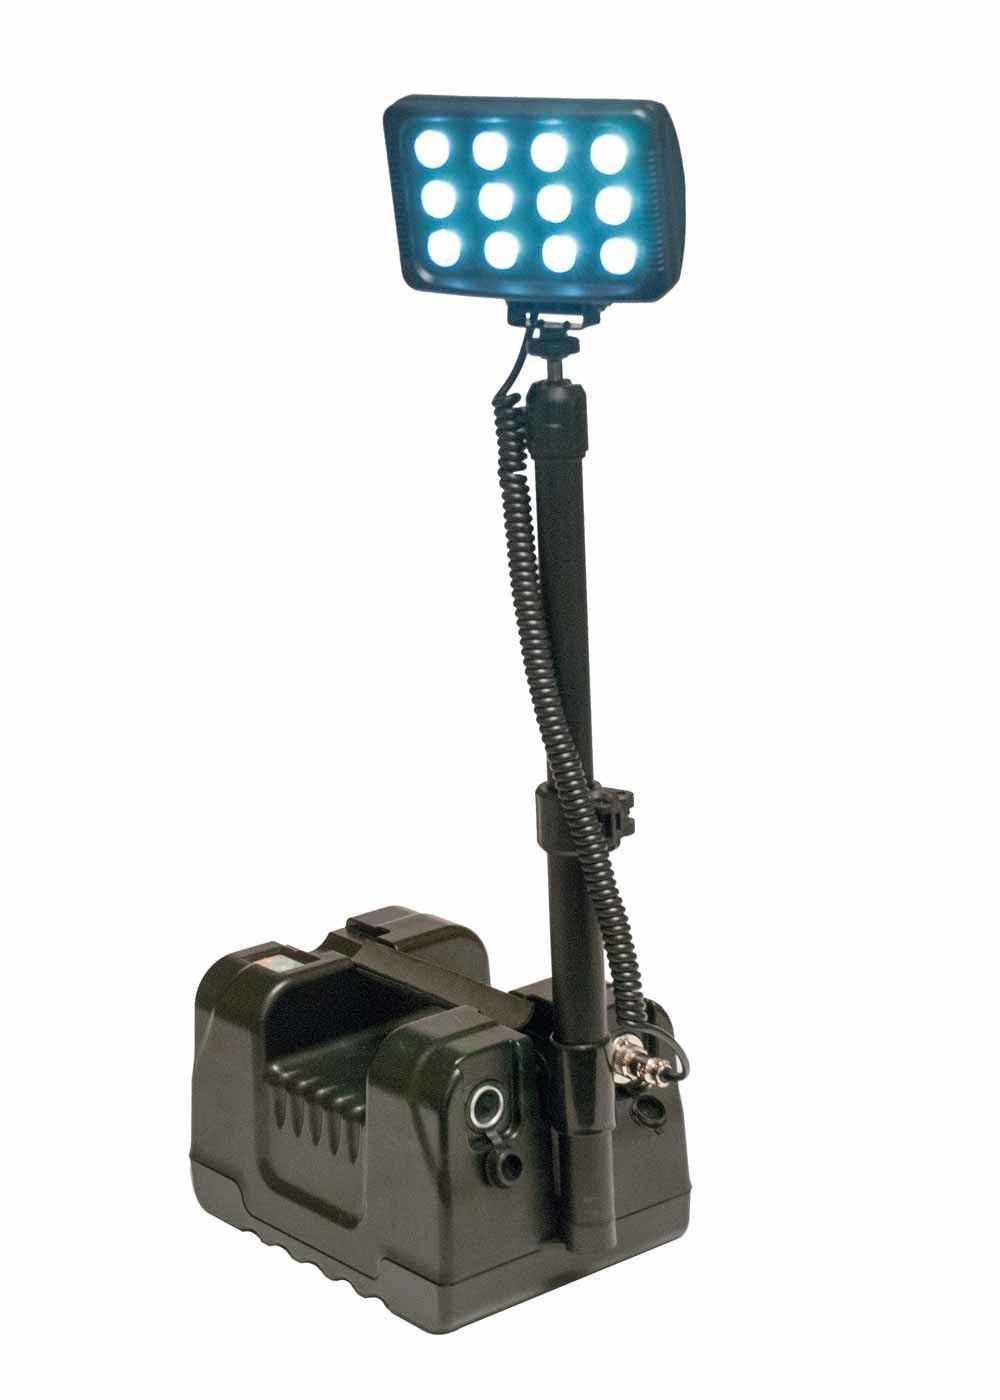 X90 Portable Remote Area Led Lighting System Tuff Lights